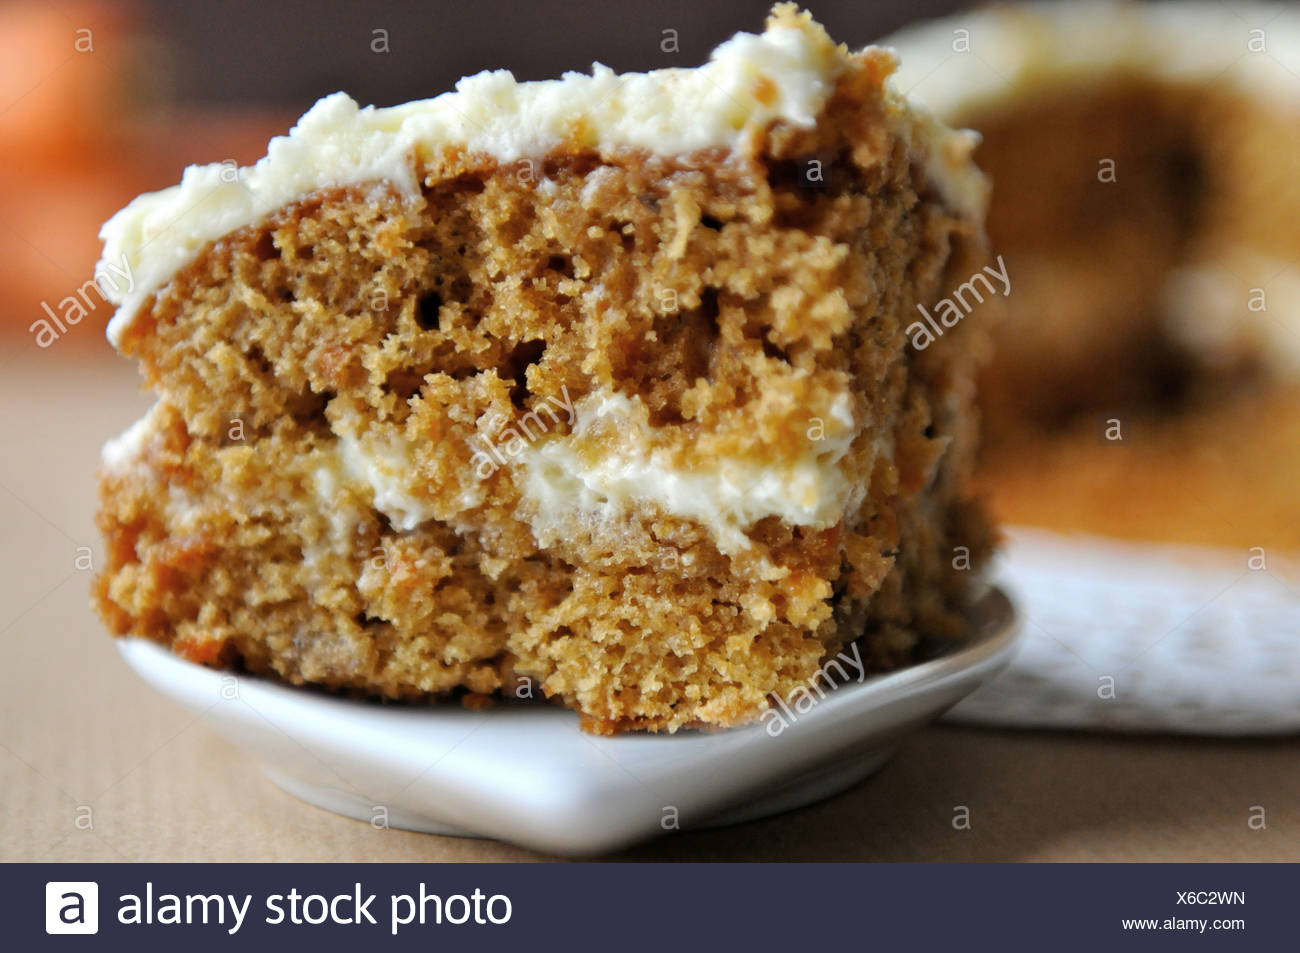 A single piece of carrot cake on a white plate - Stock Image